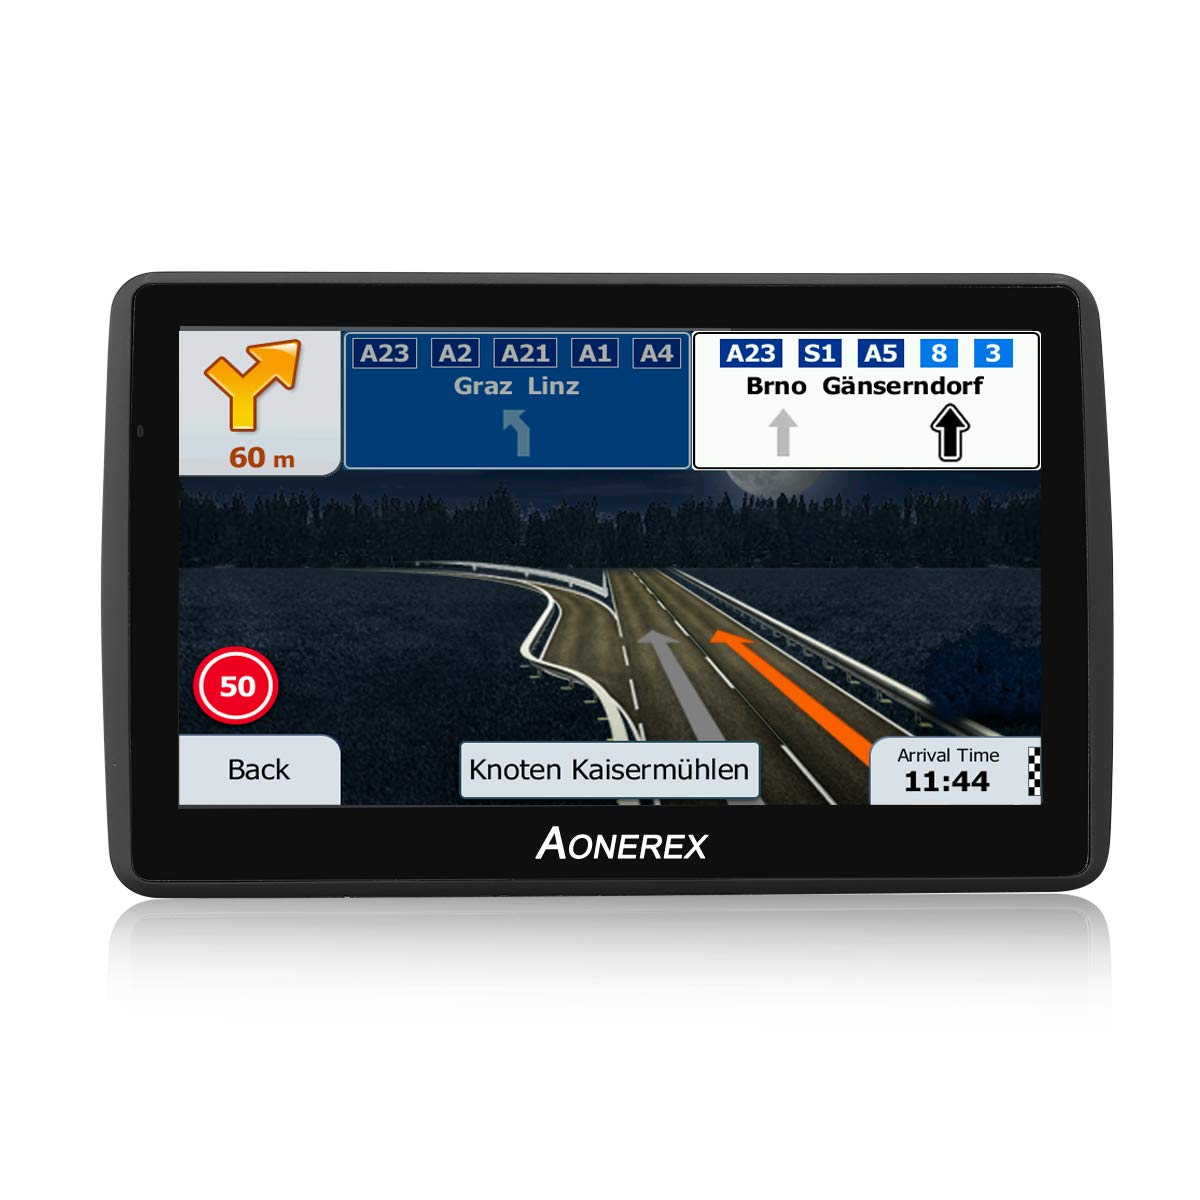 Aonerex GPS Navigation for car 7 inch Touch Screen +256MB 8GB Voice Prompt GPS Navigation System Built-in Lifetime Maps,Advanced Lane Guidance and Spoken Turn-by-Turn Directions by Aonerex (Image #2)